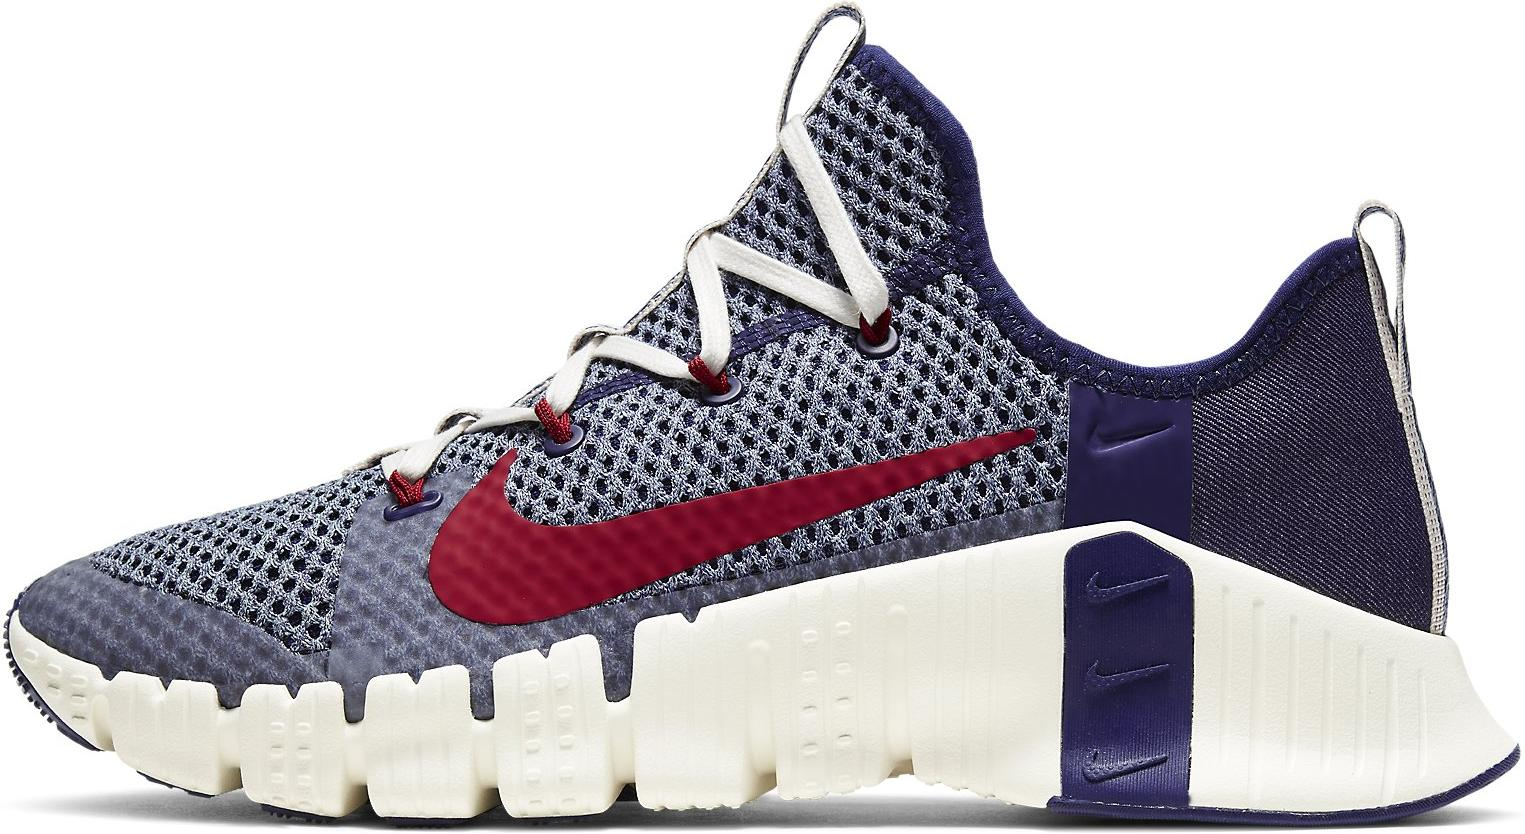 Chaussures de fitness Nike FREE METCON 3 AMP